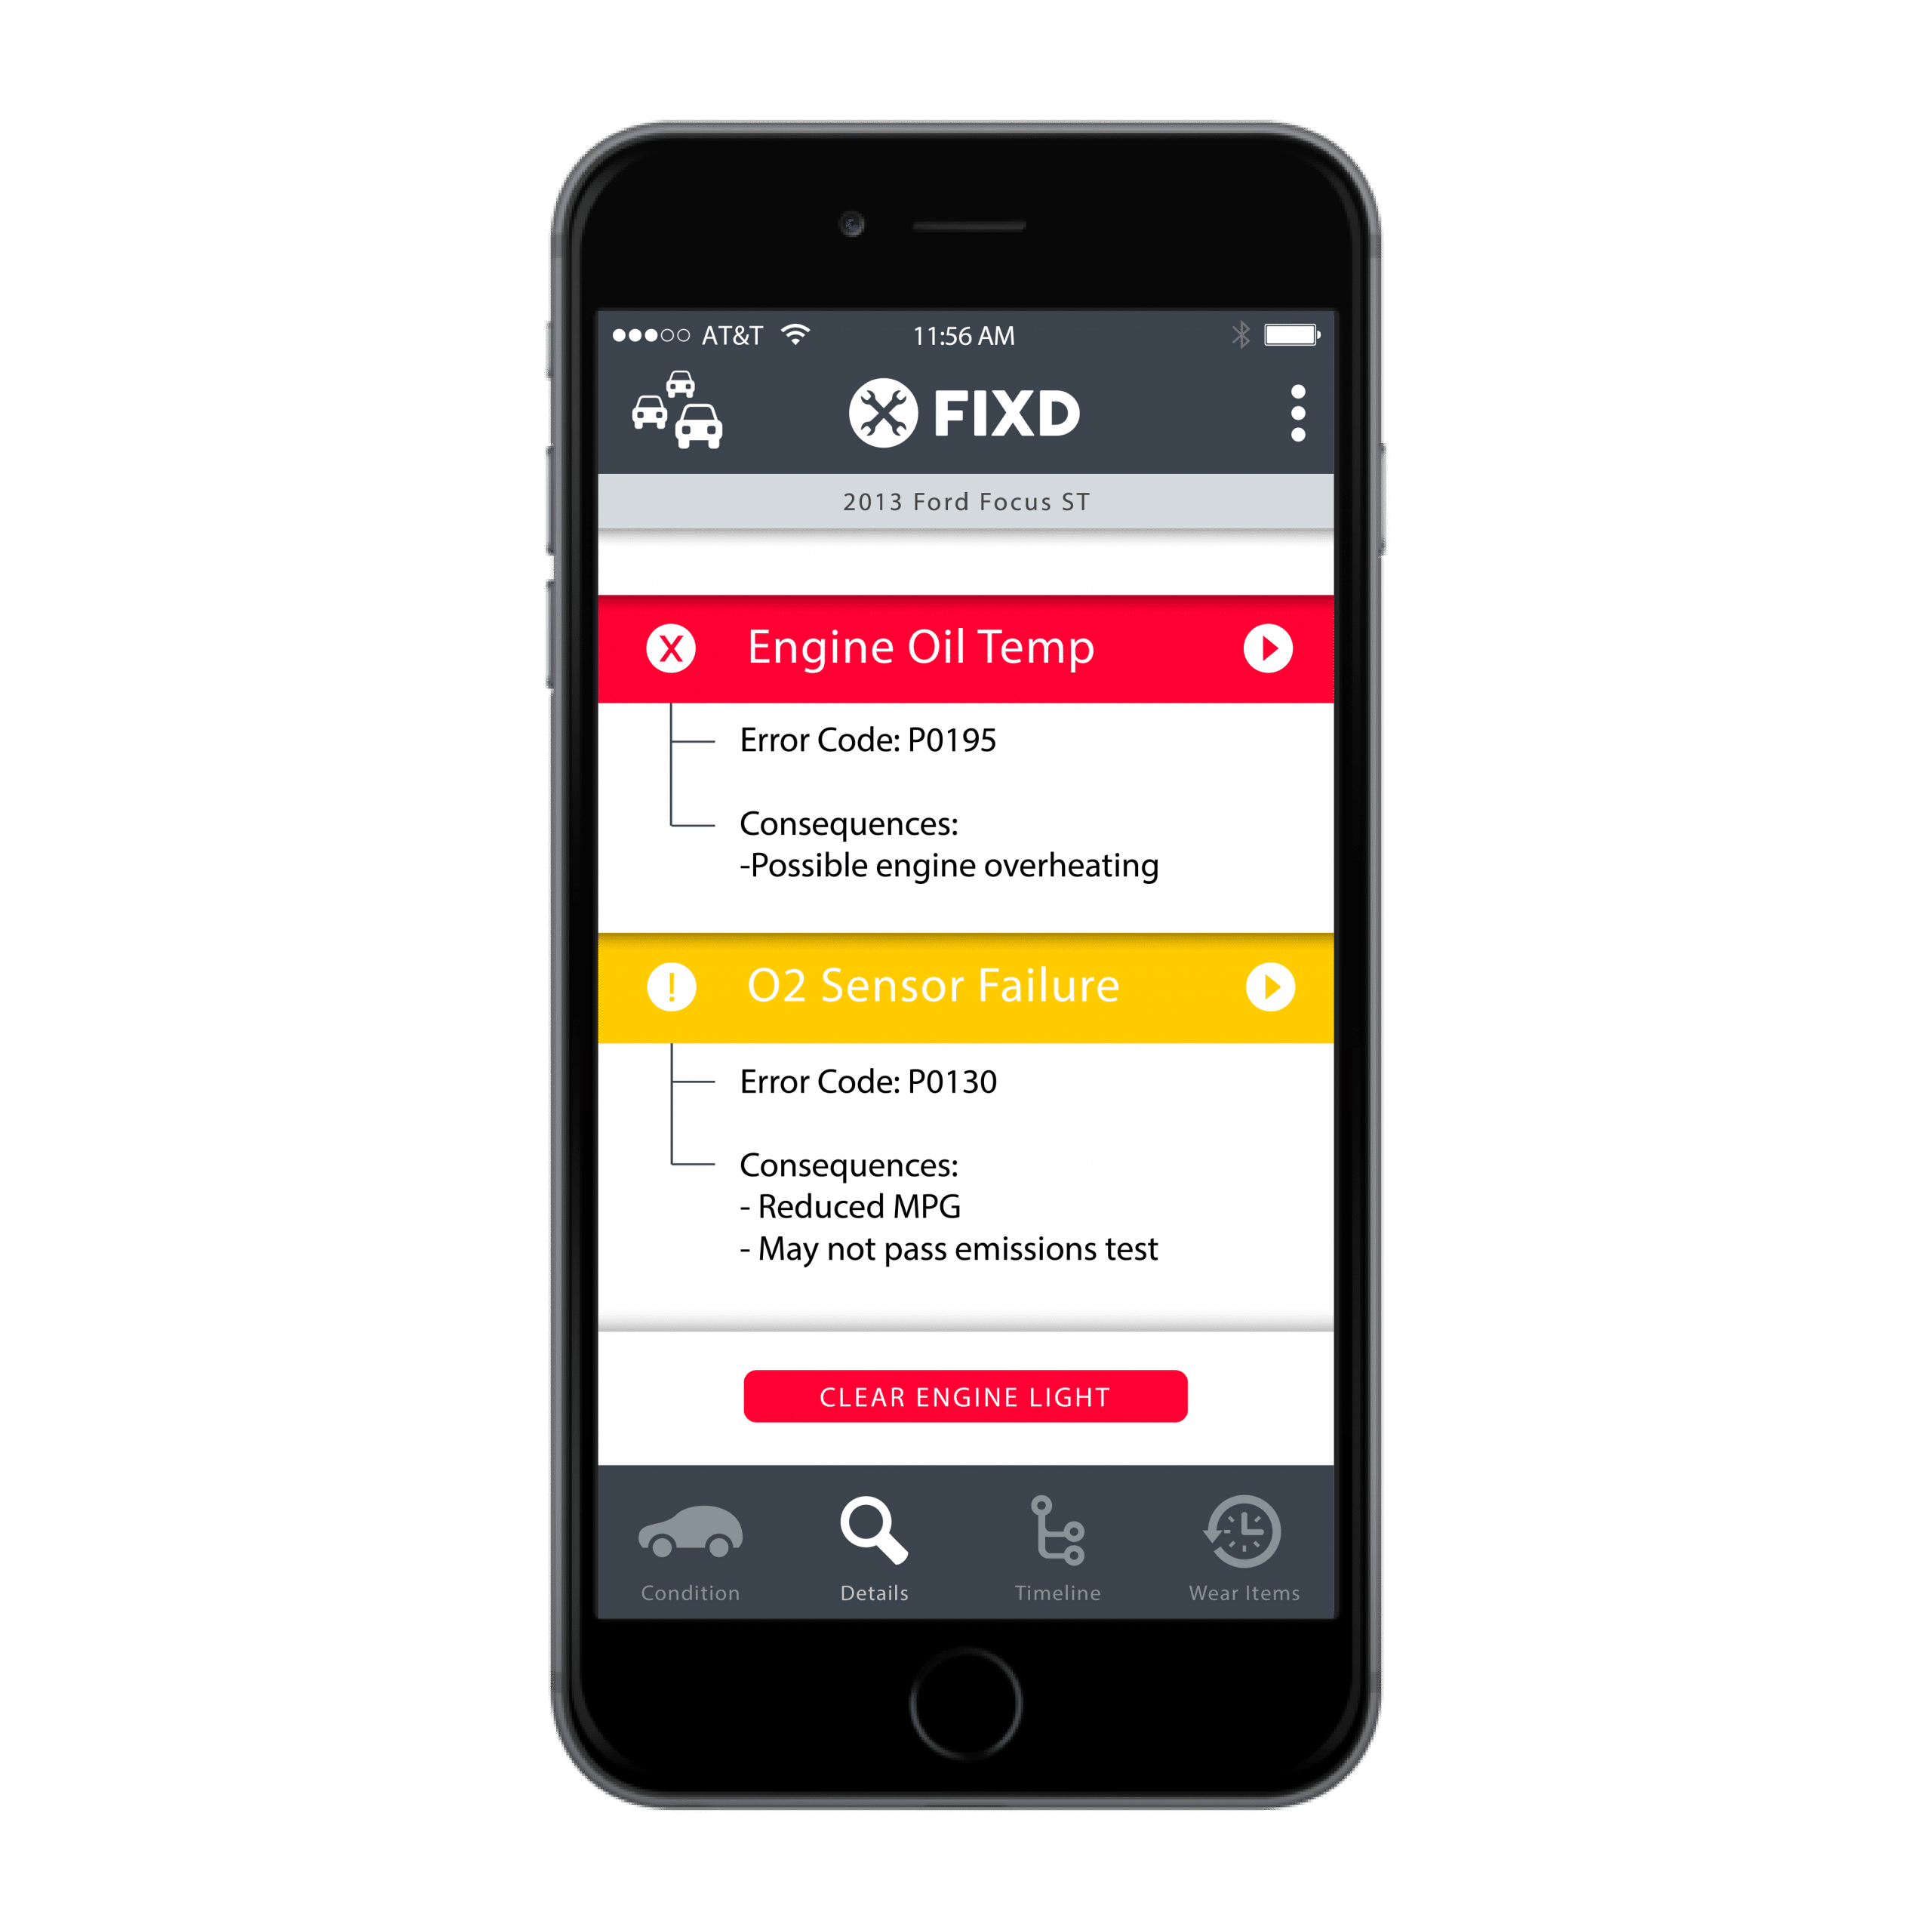 FIXD OBD2 scanner app reads check engine light codes